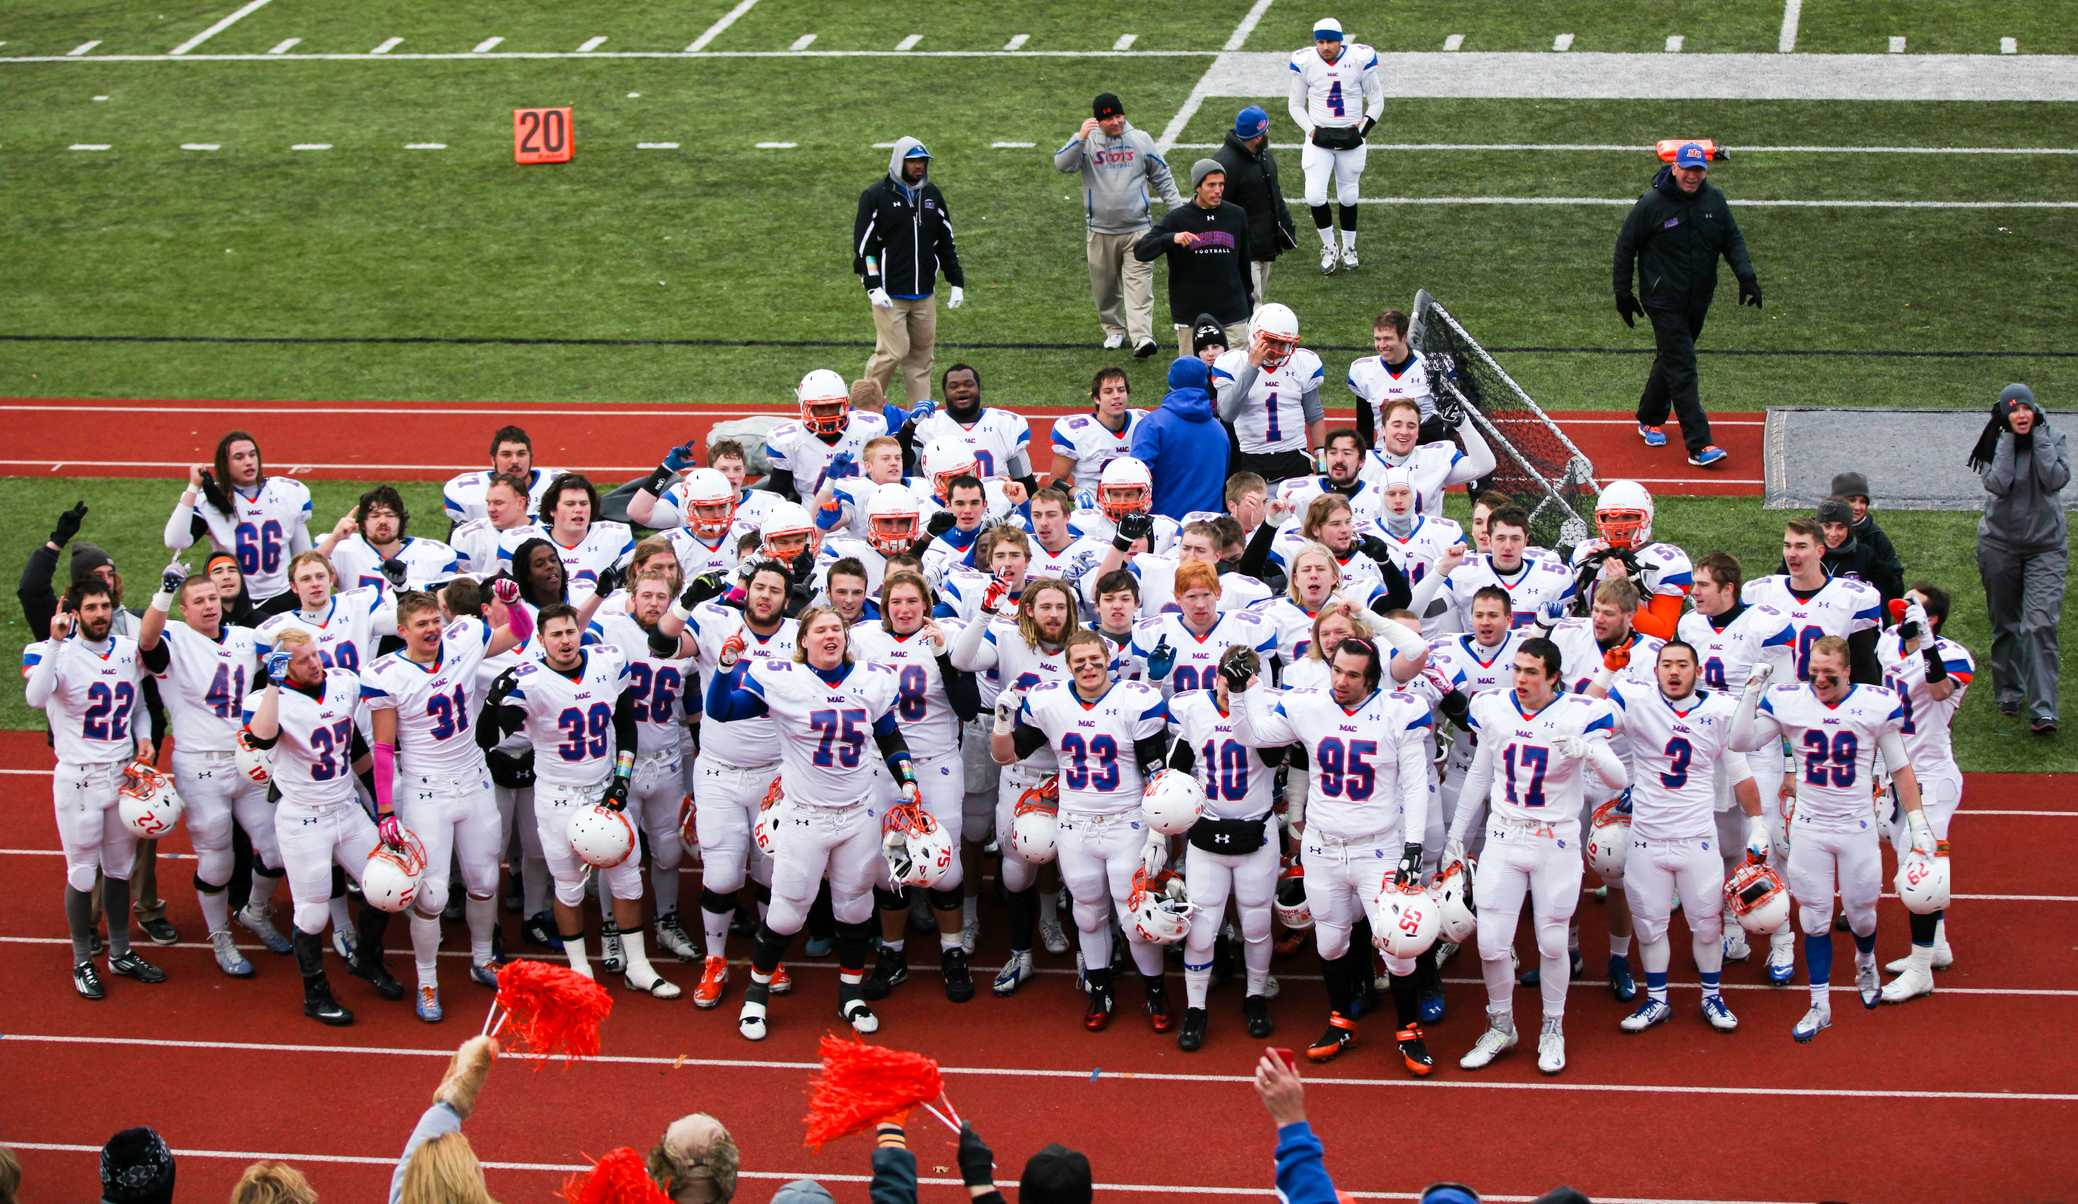 Macalester Football wins conference for first time in 67 years